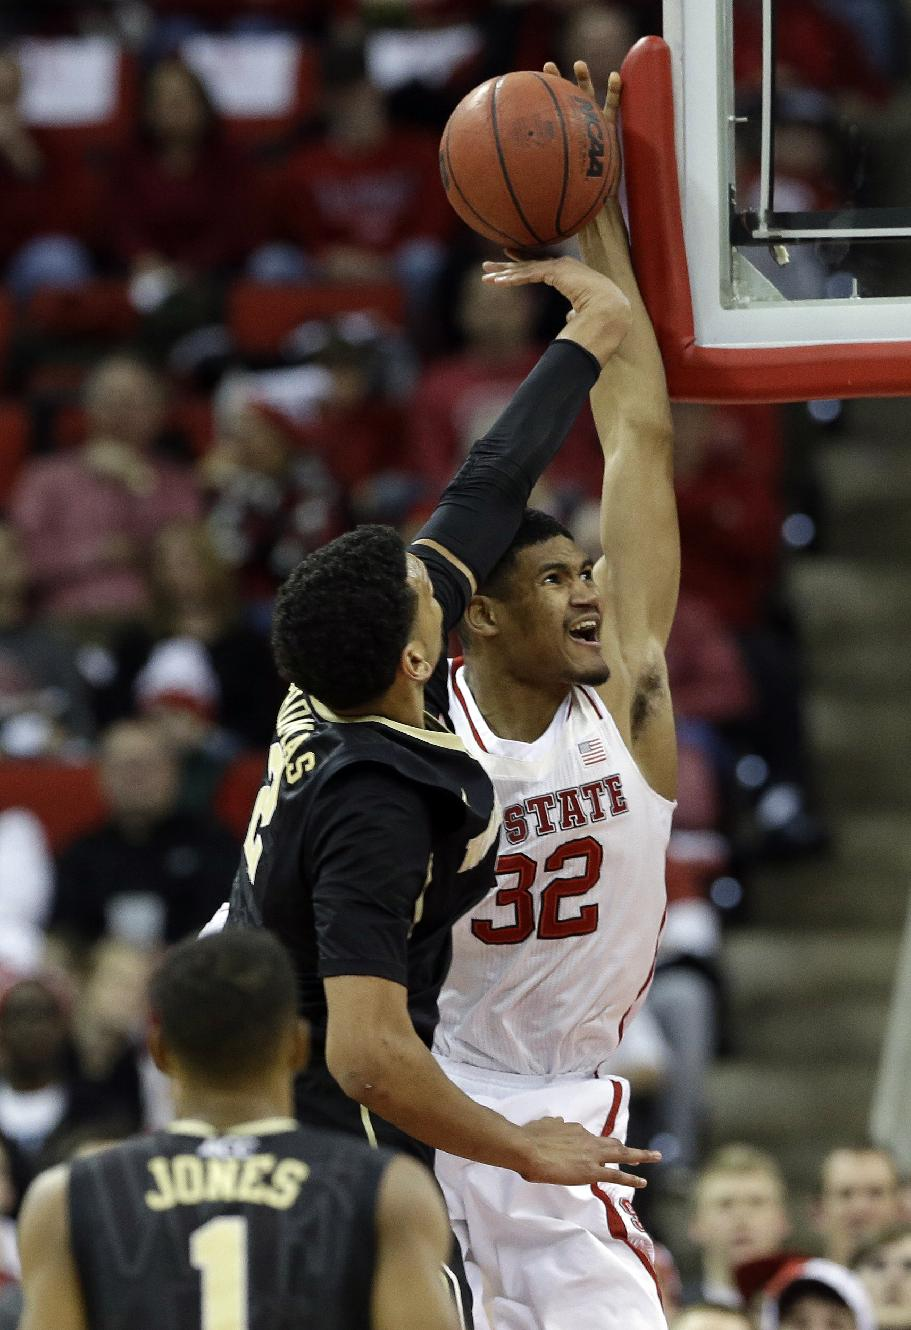 North Carolina State's Kyle Washington (32) drives to the basket as Wake Forest's Devin Thomas defends during the second half of an NCAA college basketball game in Raleigh, N.C., Tuesday, Feb. 11, 2014. North Carolina State won 82-67